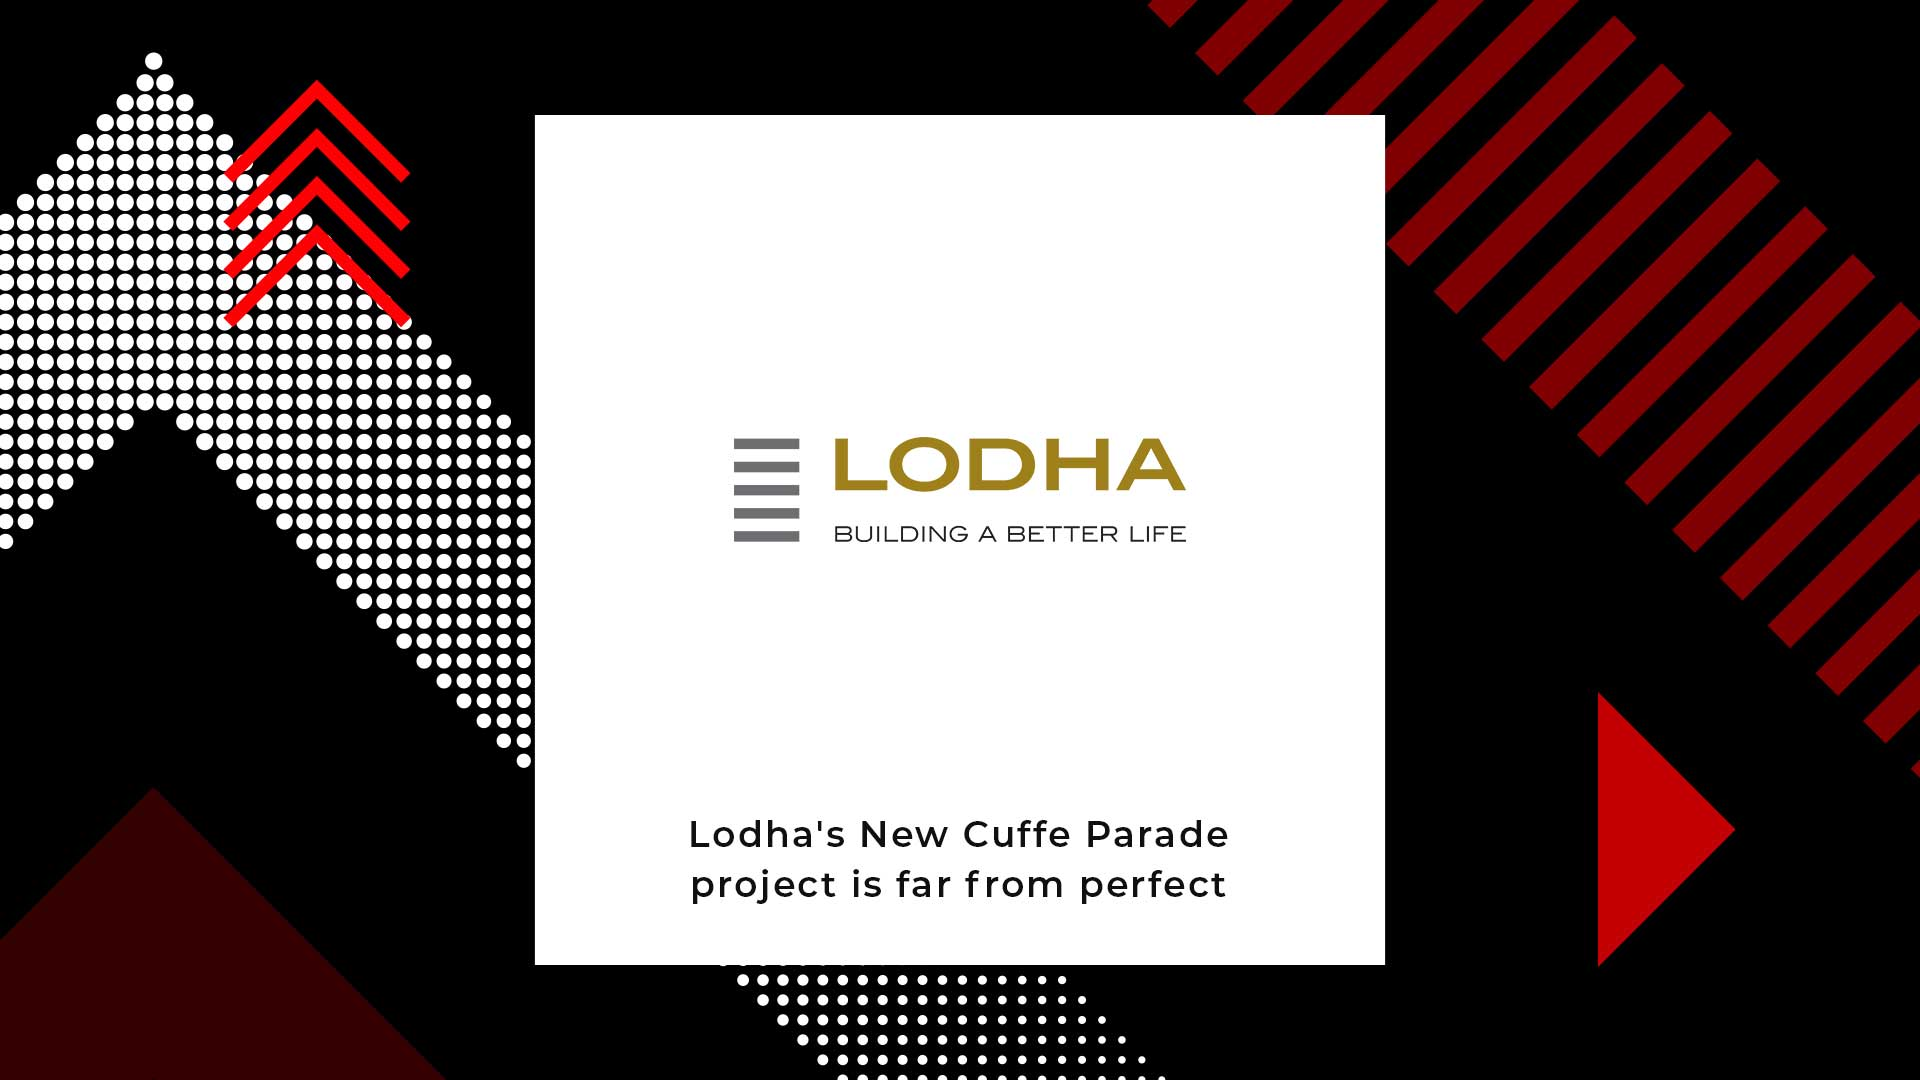 The Harsh Reality Of Lodha's New Cuffe Parade Project